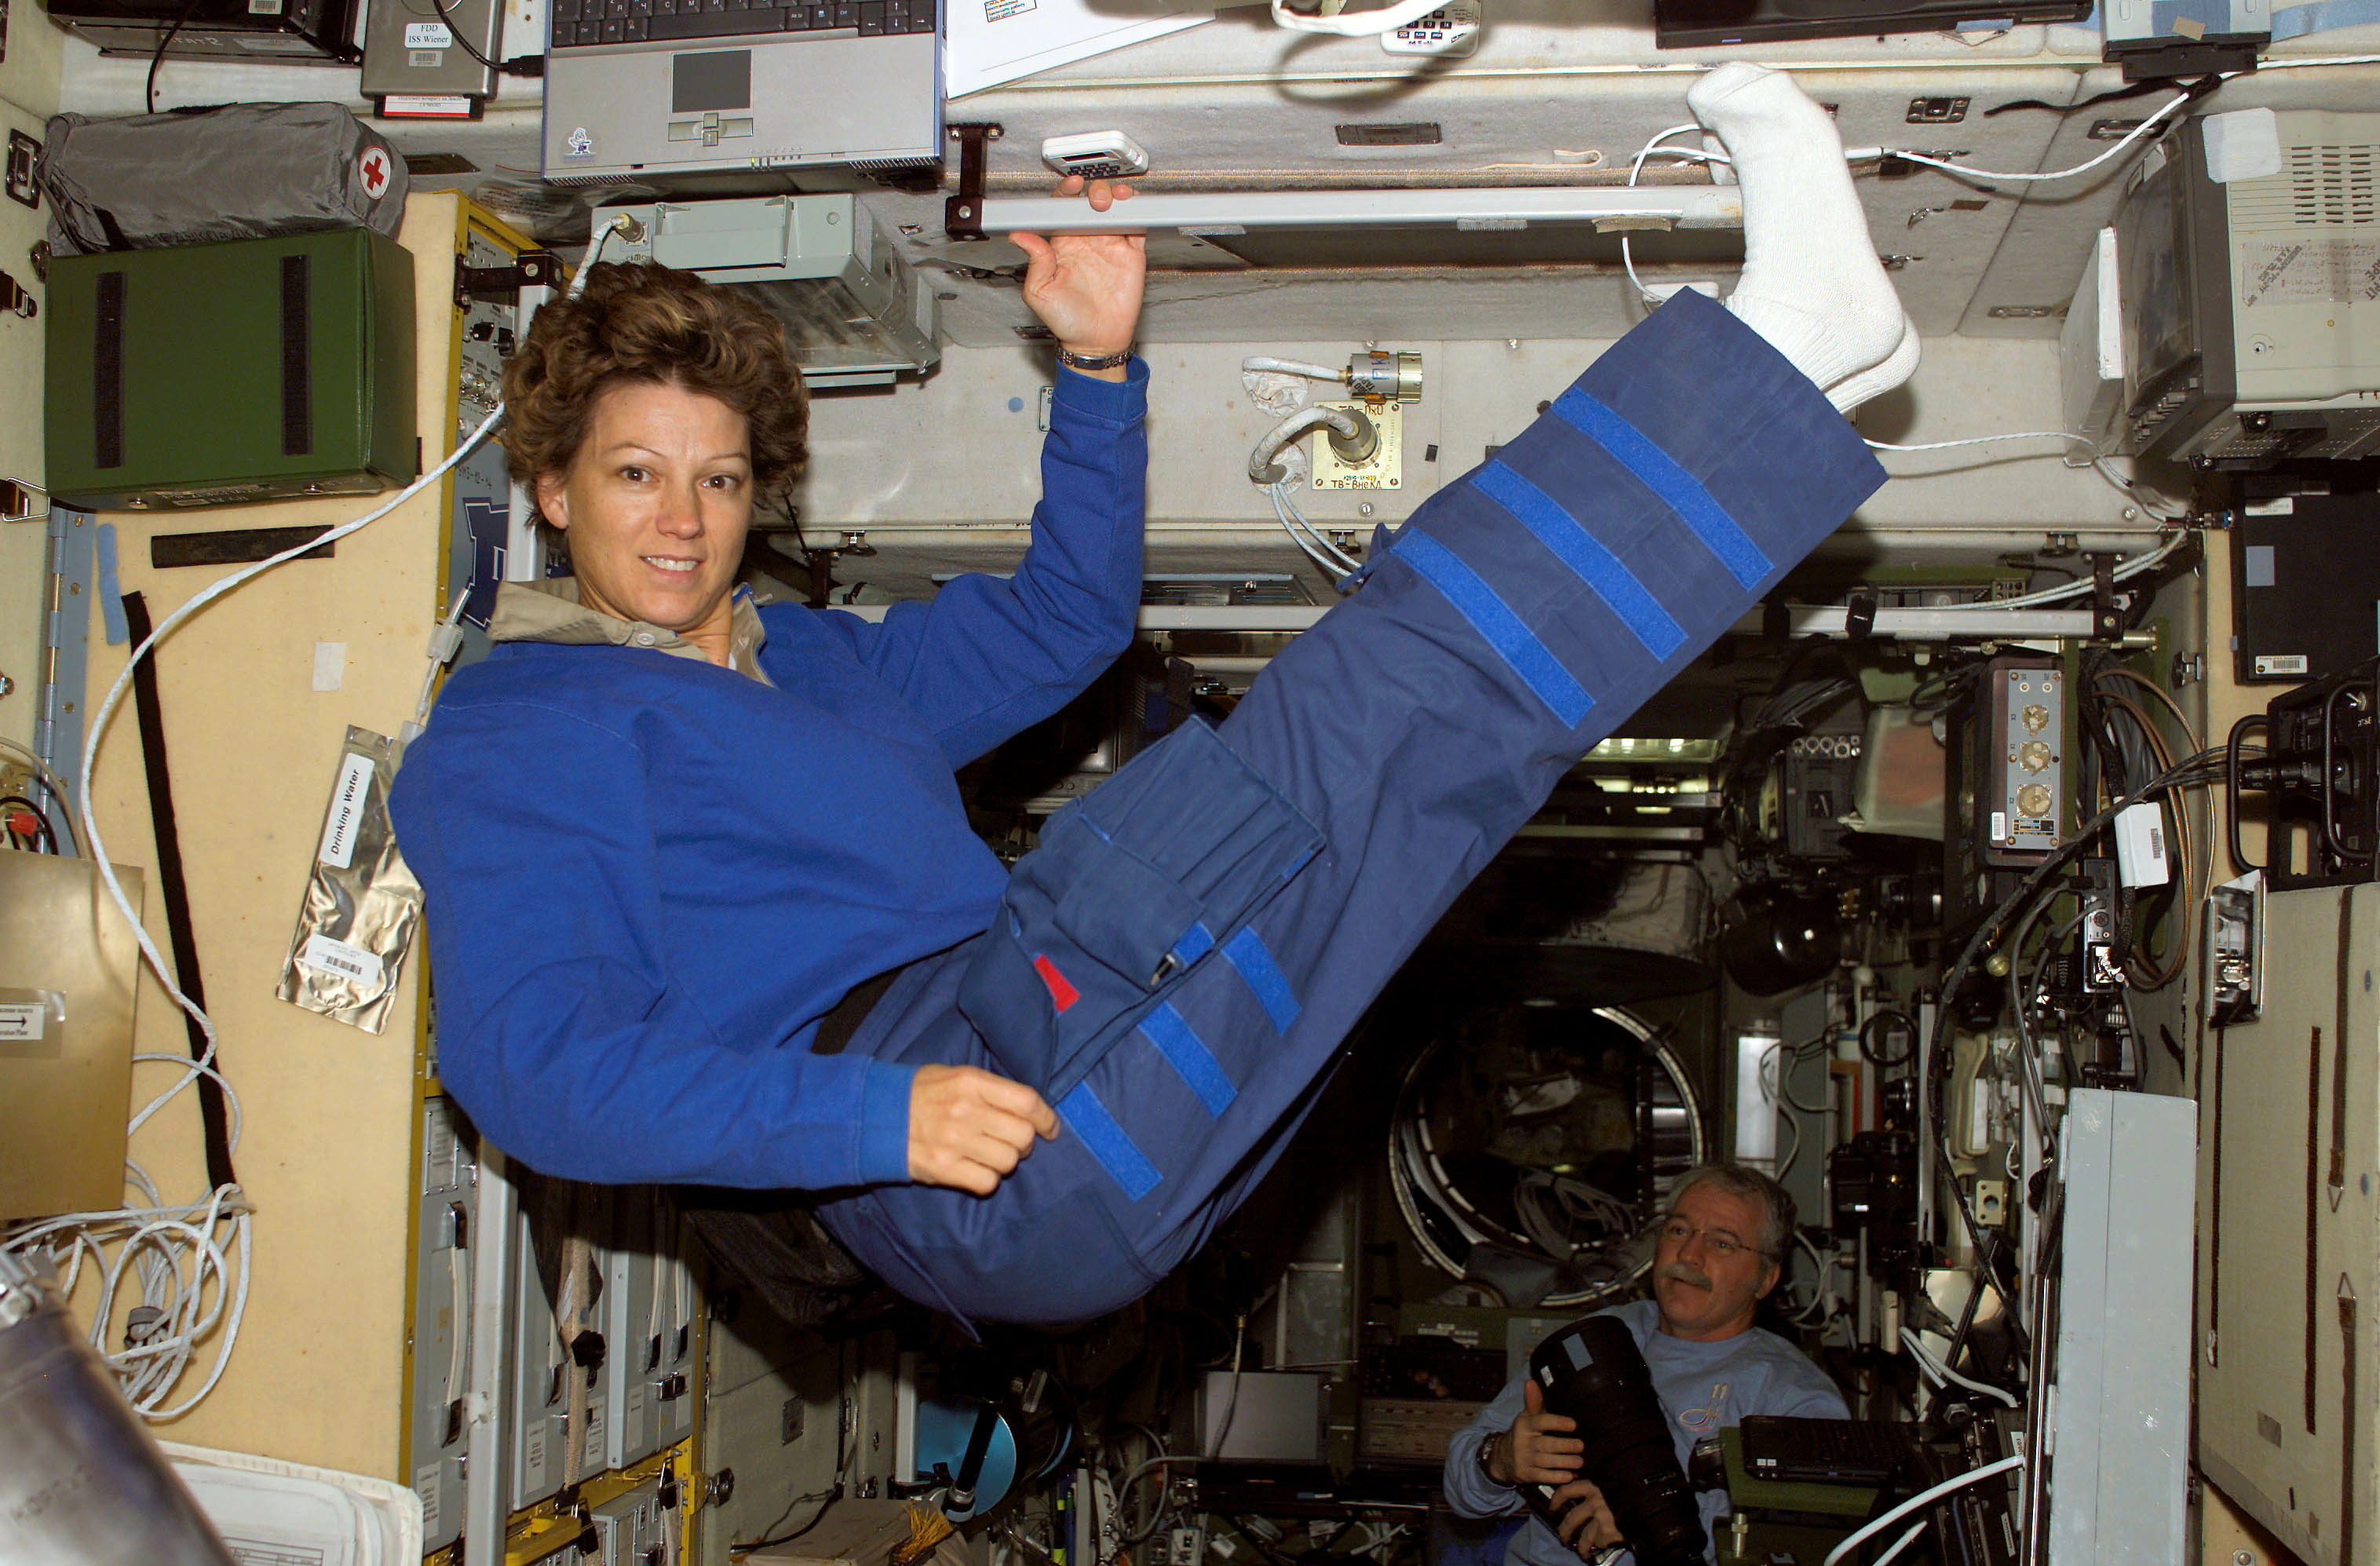 - PHOTO TAKEN 05AUG05 - Astronaut Eileen Collins, STS-114 commander, floats in the Zvezda Service Module of the International Space Station while Space Shuttle Discovery was docked to the Station, August 5, 2005. Astronaut John Phillips, Expedition 11 NASA Space Station science officer and flight engineer, is visible at bottom right. Picture taken August 5, 2005.  ? EDITORIAL USE ONLY - RTXNORM